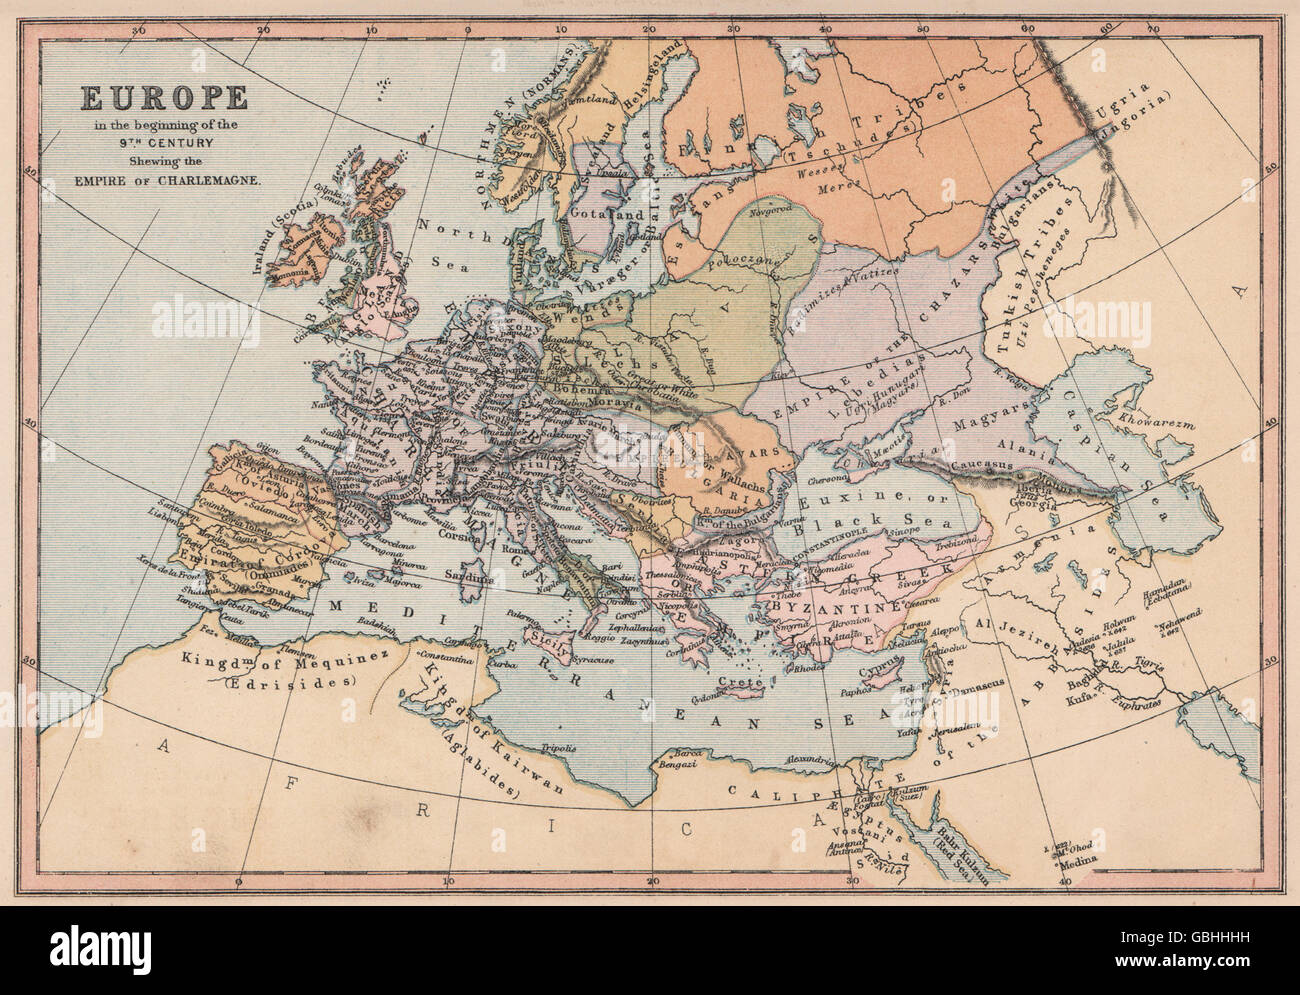 9c Europe Empires Charlemagne Istanbul Emirate Cordoba Collins